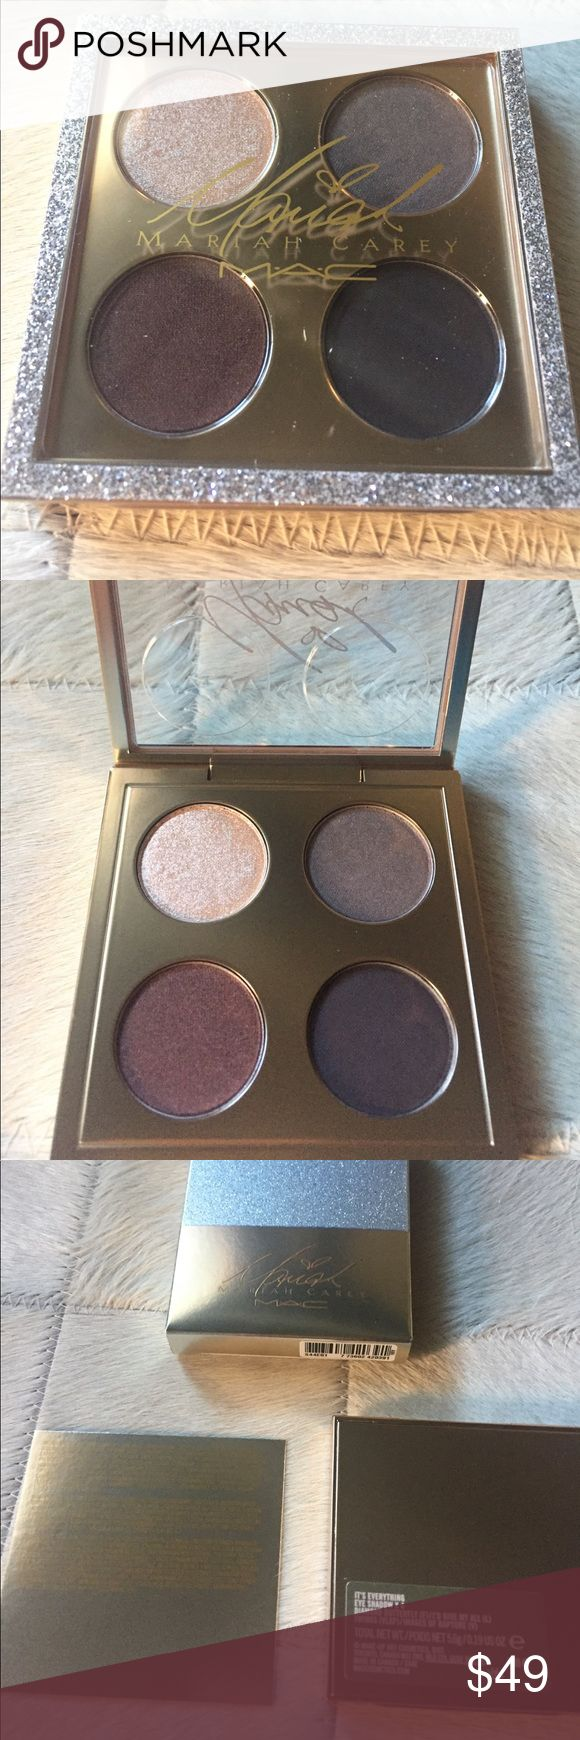 Mac Mariah Carey eyeshadow quad Bnib, only opened for pics.  Eyeshadow quad in I'm that girl you like. MAC Cosmetics Makeup Eyeshadow